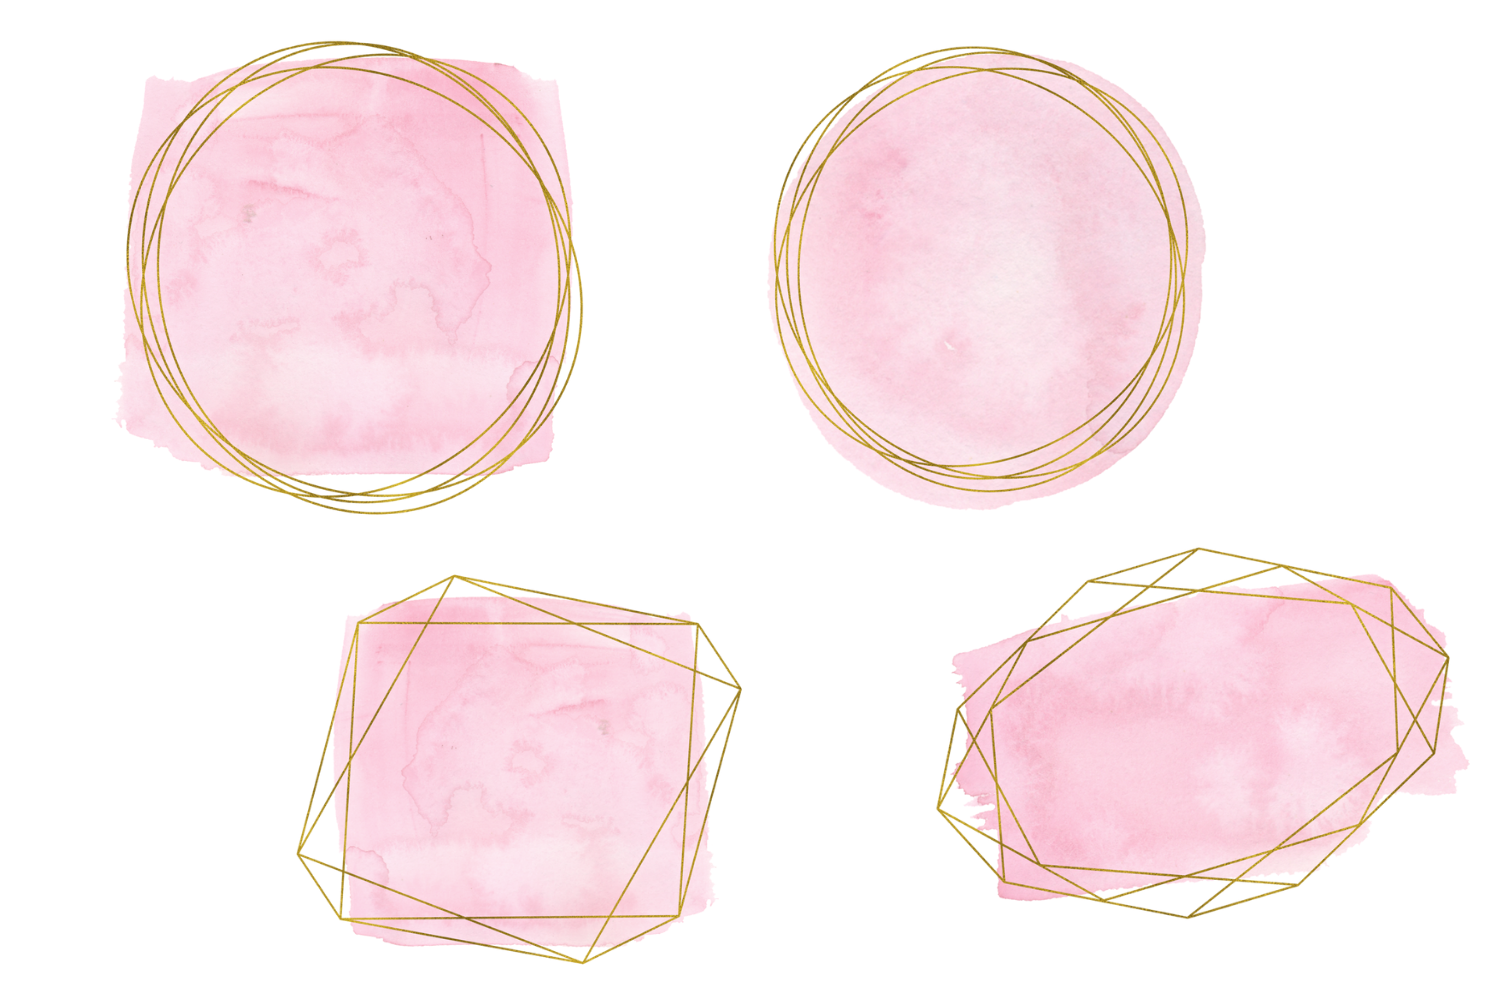 Pink and gold frames clip art, Watercolor design elements example image 2